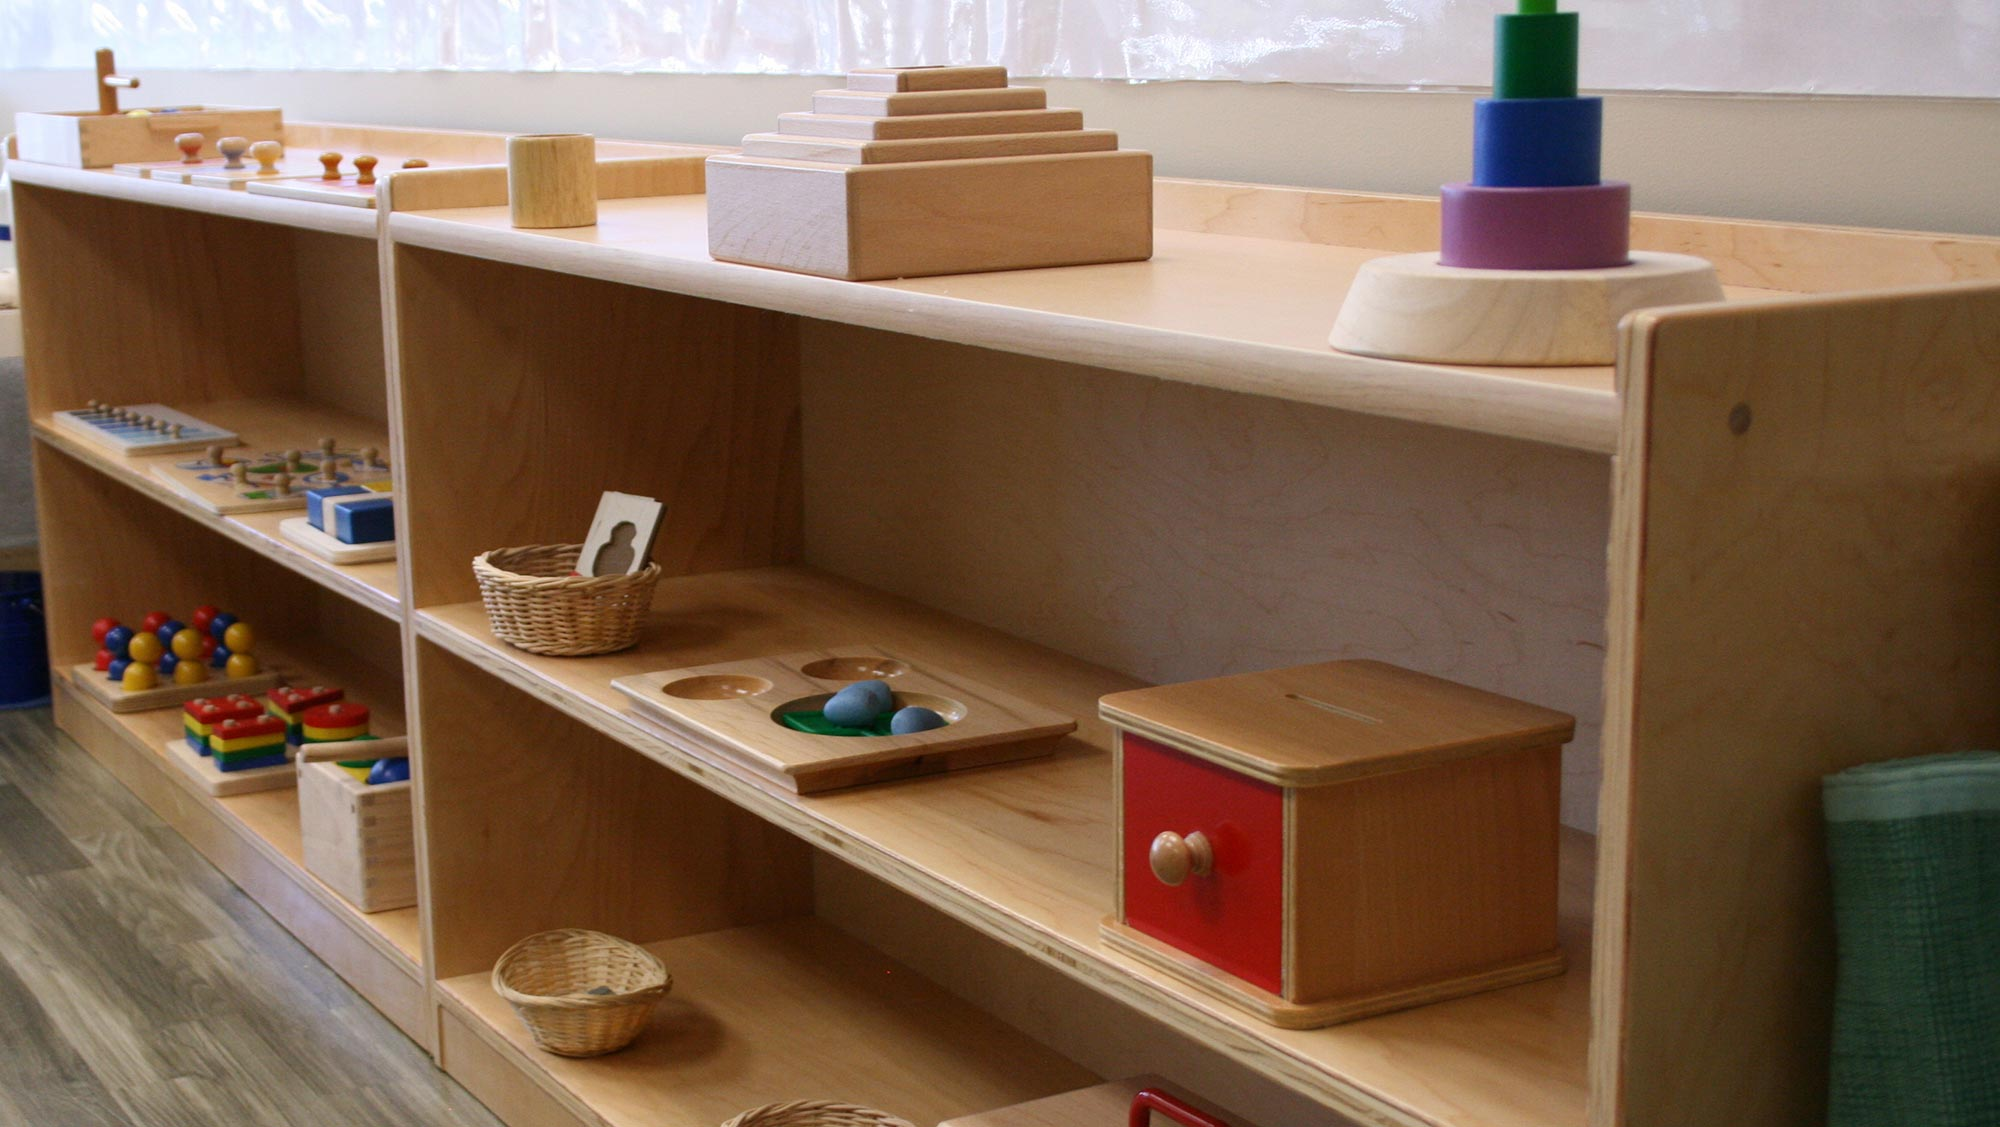 toddler-program-bookshelf